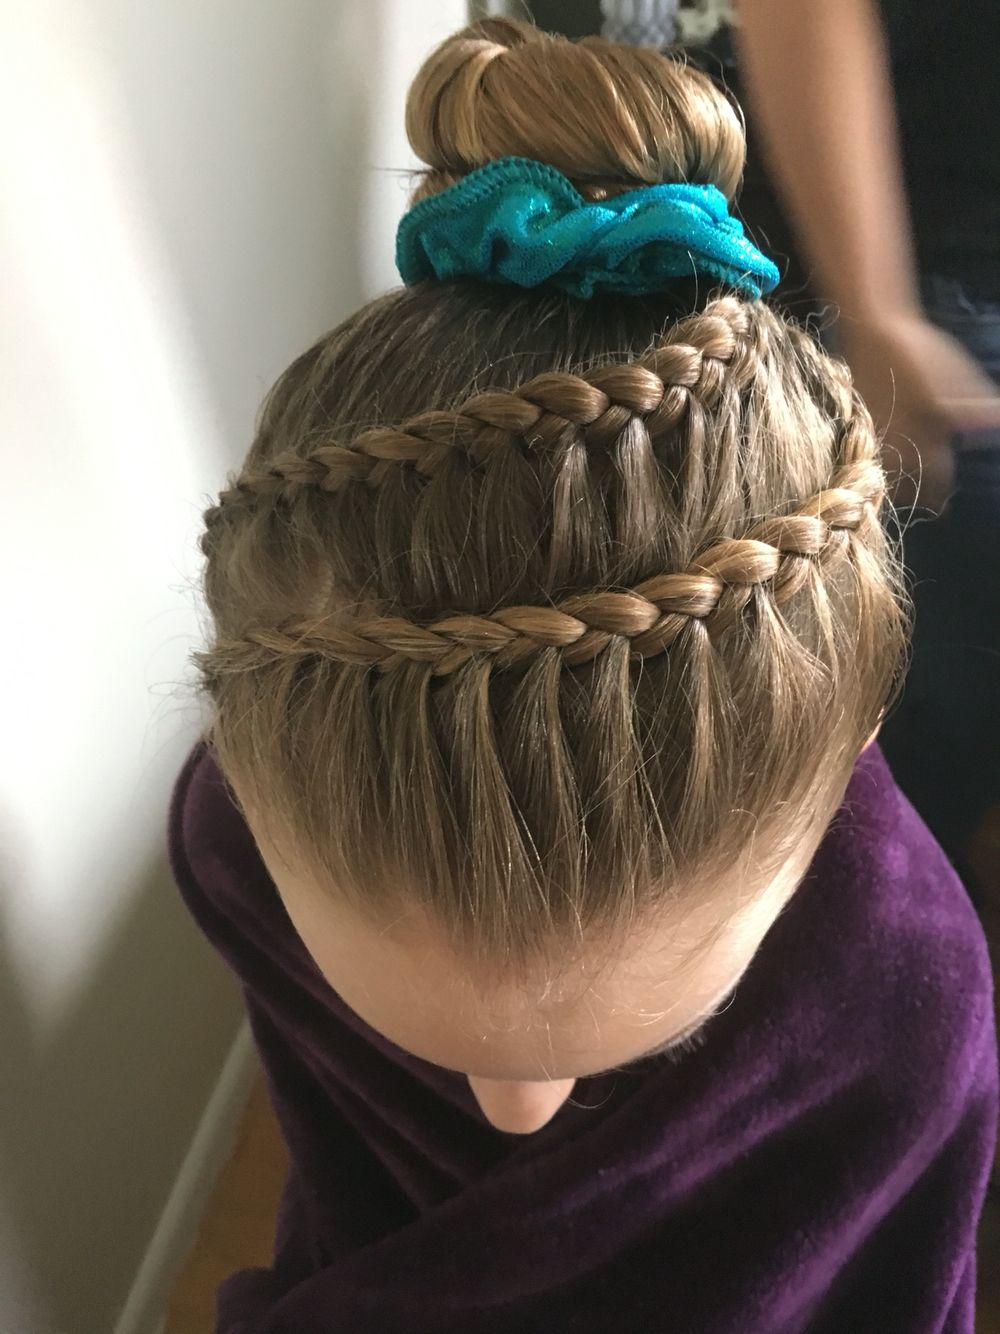 Hairstyles For Long Hair Gymnastics Hairstyles Trends Competition Hair Gymnastics Hair Dance Competition Hair